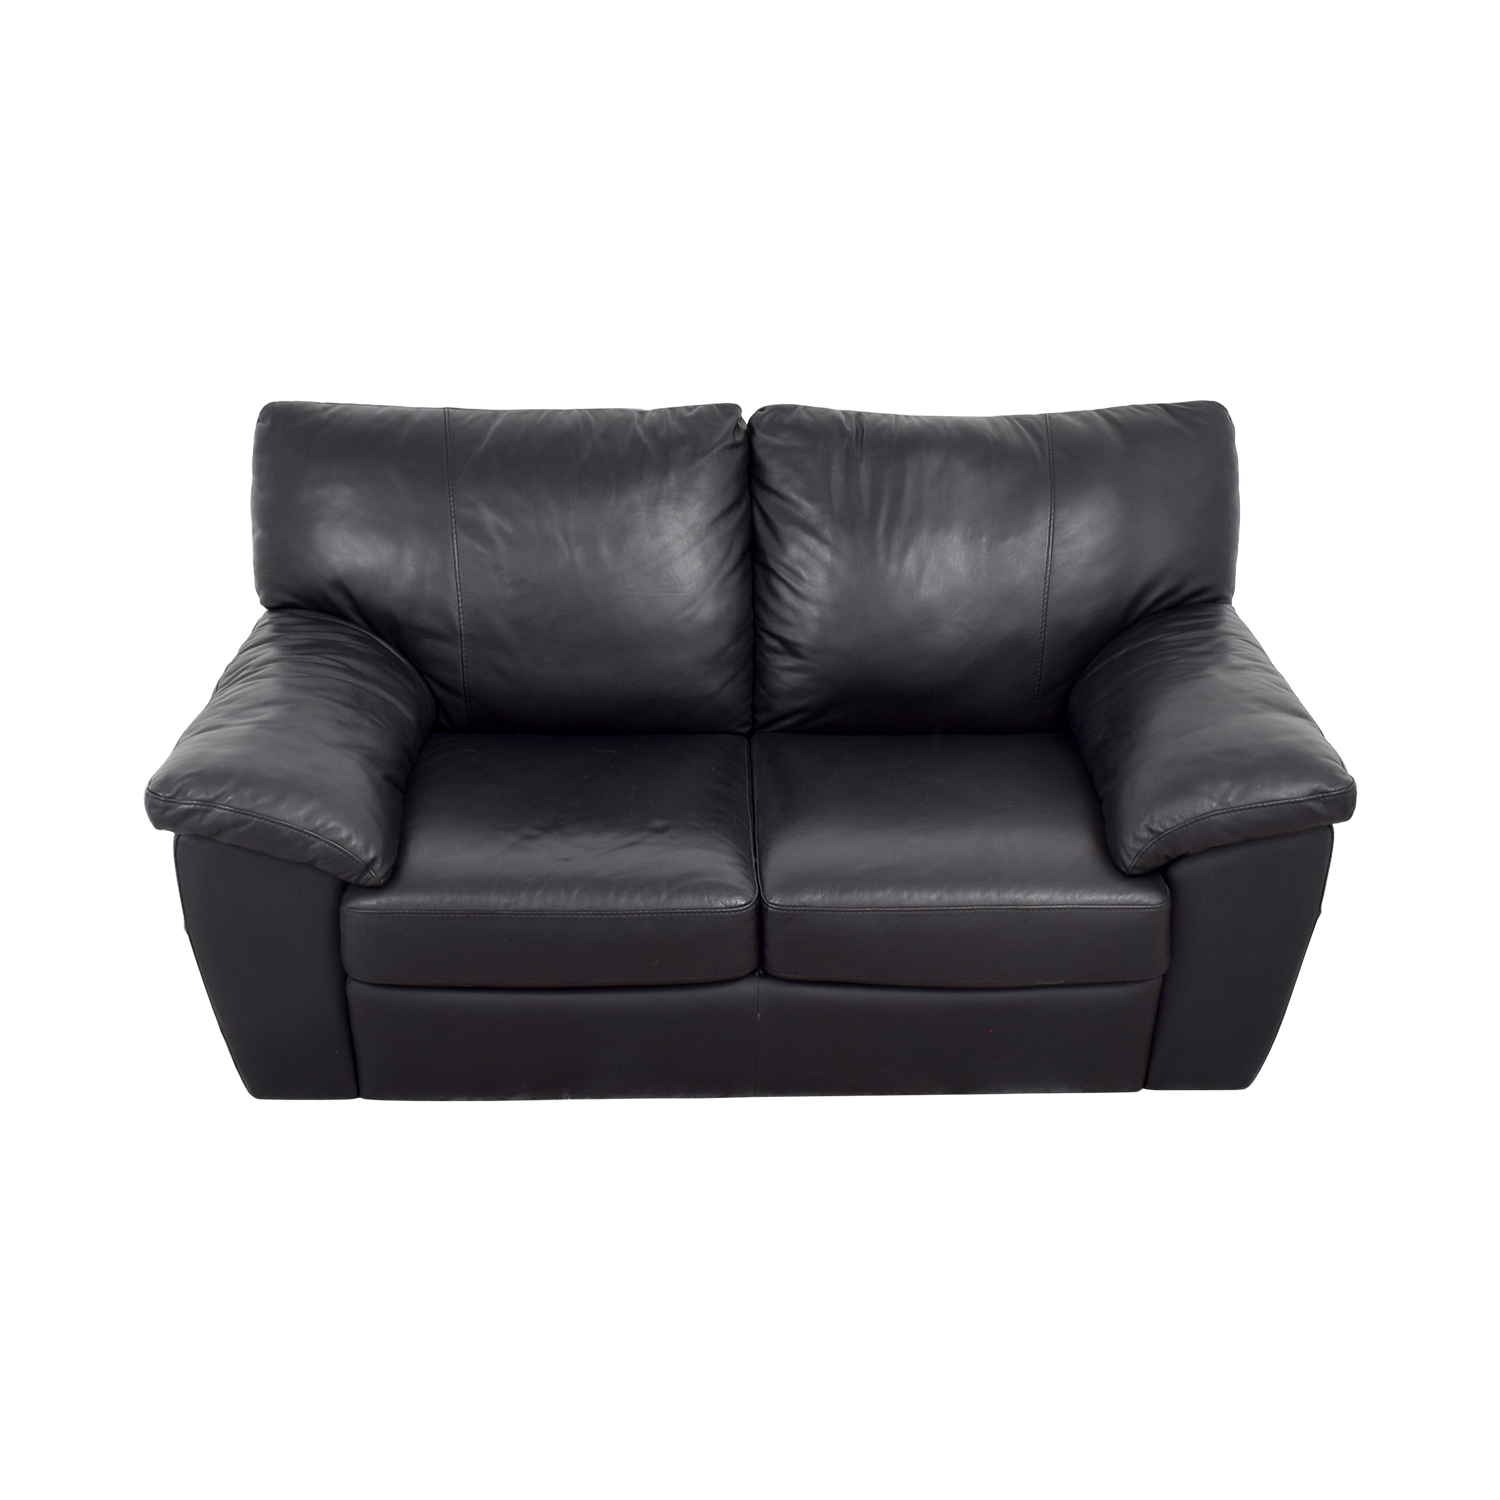 black leather chair ikea boling company 81 off two cushion couch sofas